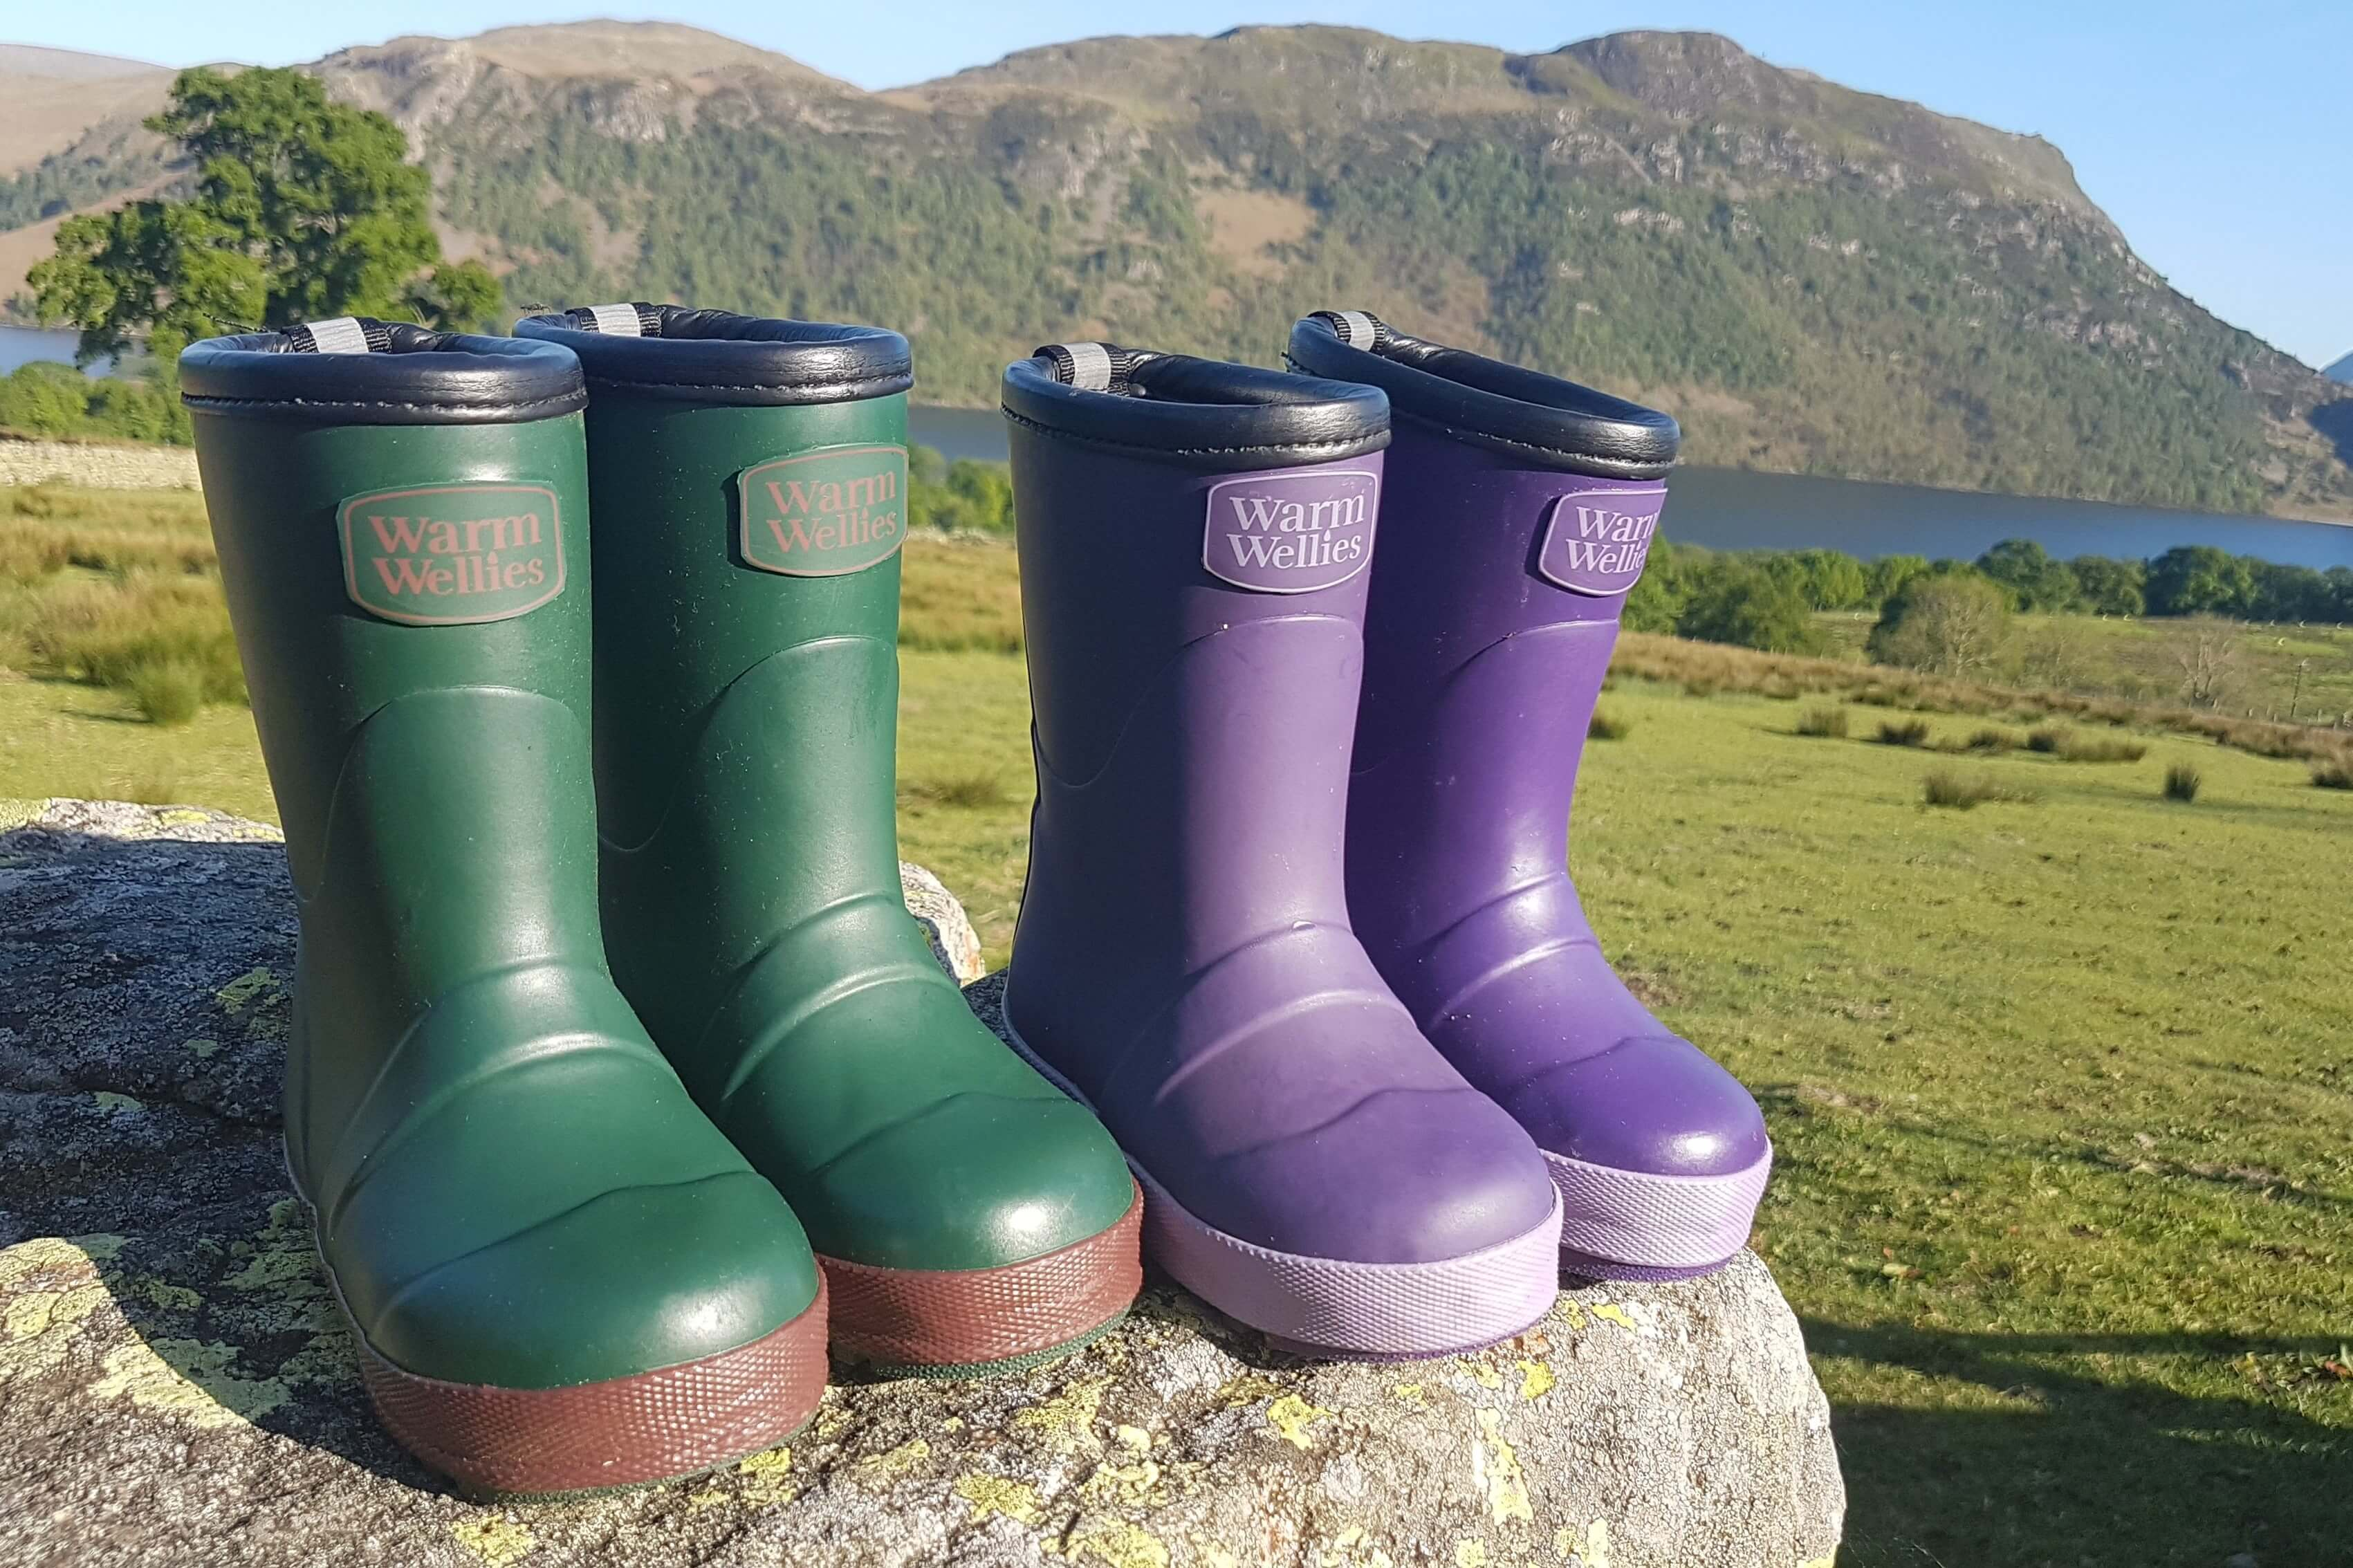 Time to tog up your toddlers in warm wellies